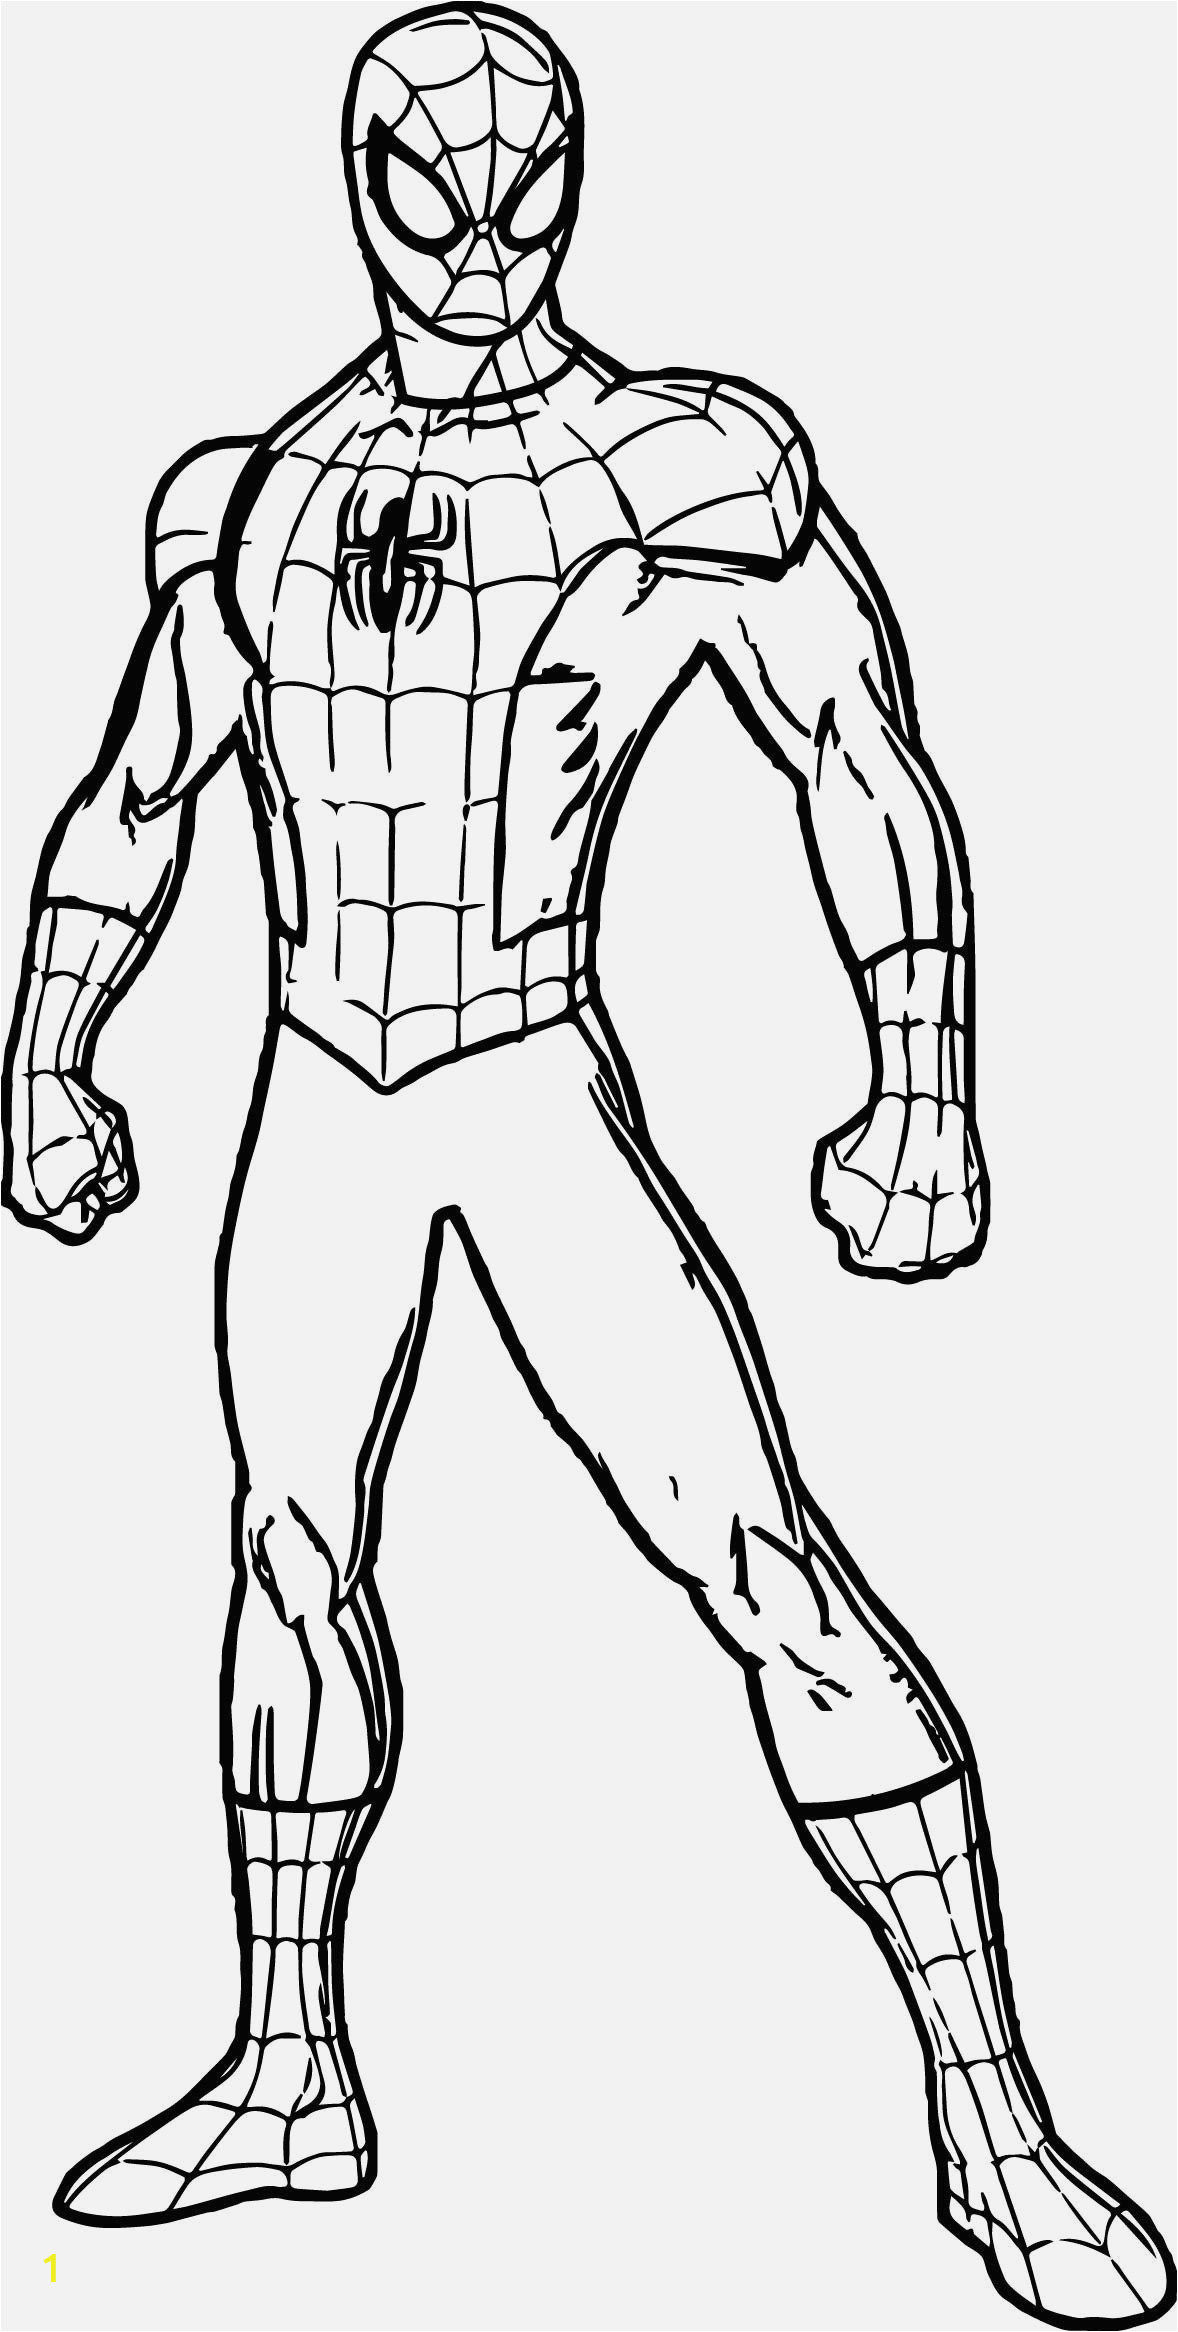 hulk and spiderman coloring pages coloring pages spiderman vs hulk divyajananiorg pages coloring spiderman hulk and